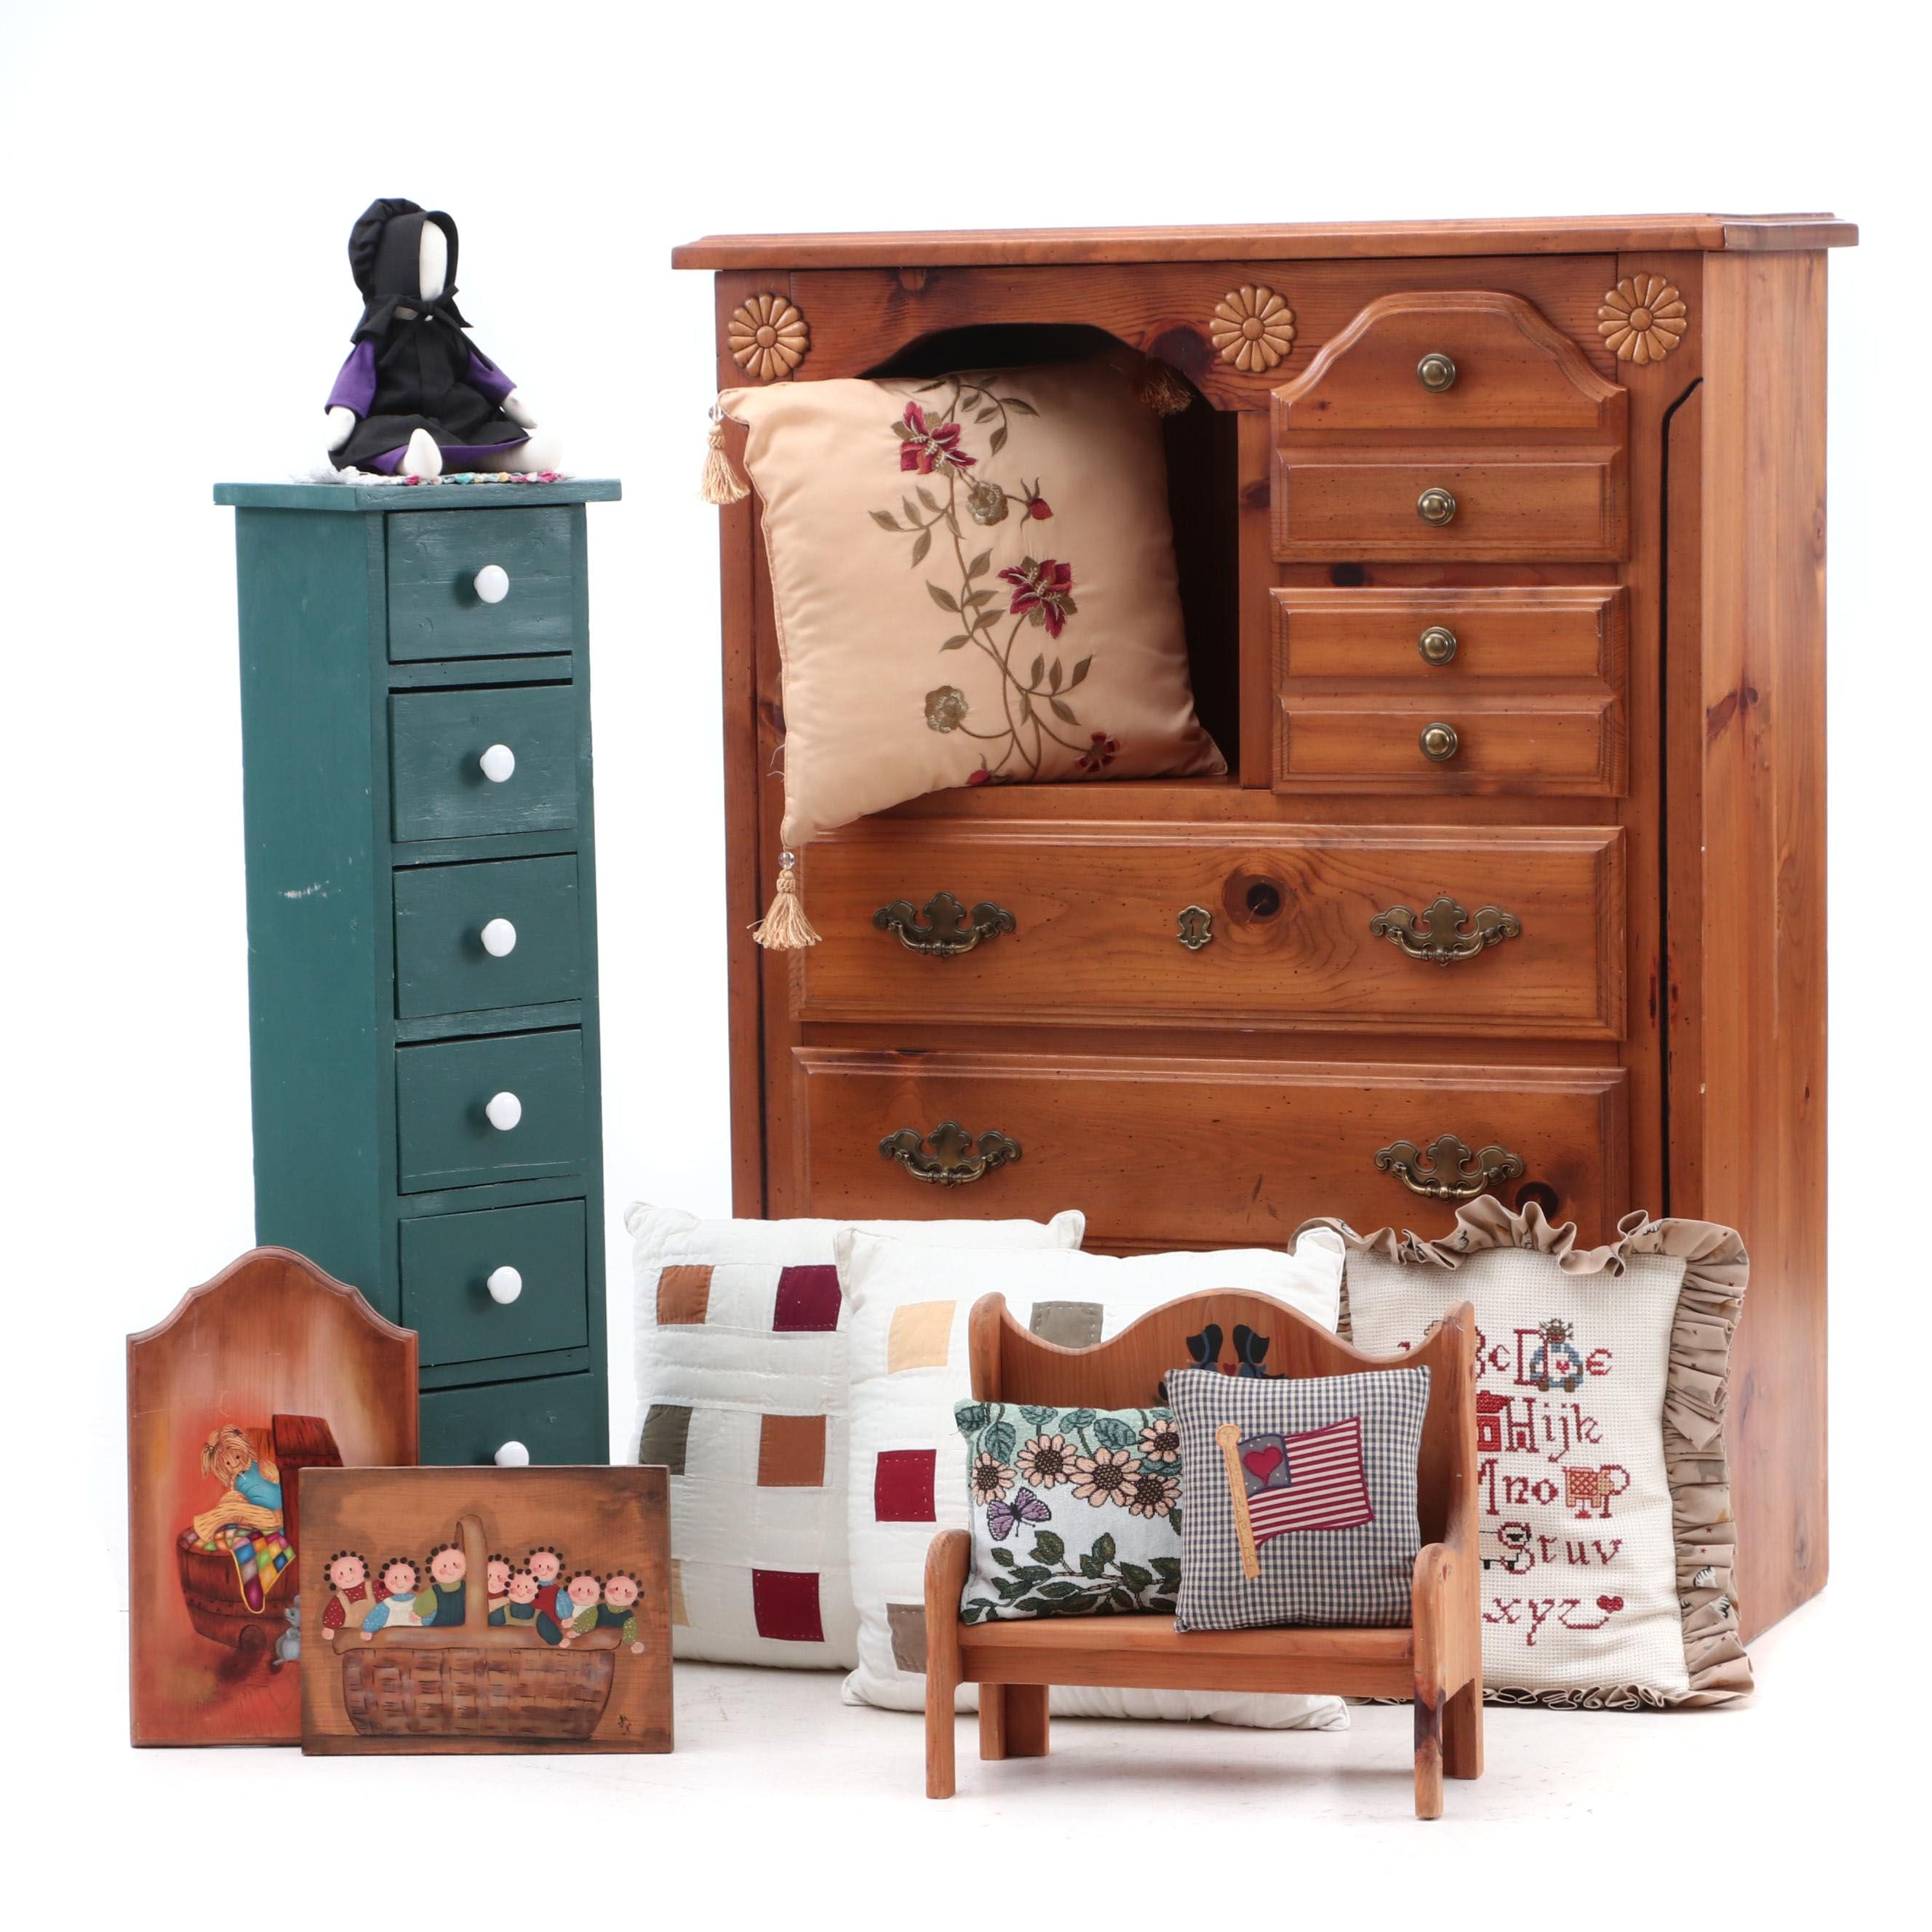 Chest of Drawers and Farmhouse Style Decor Including Handmade Accent Pillows